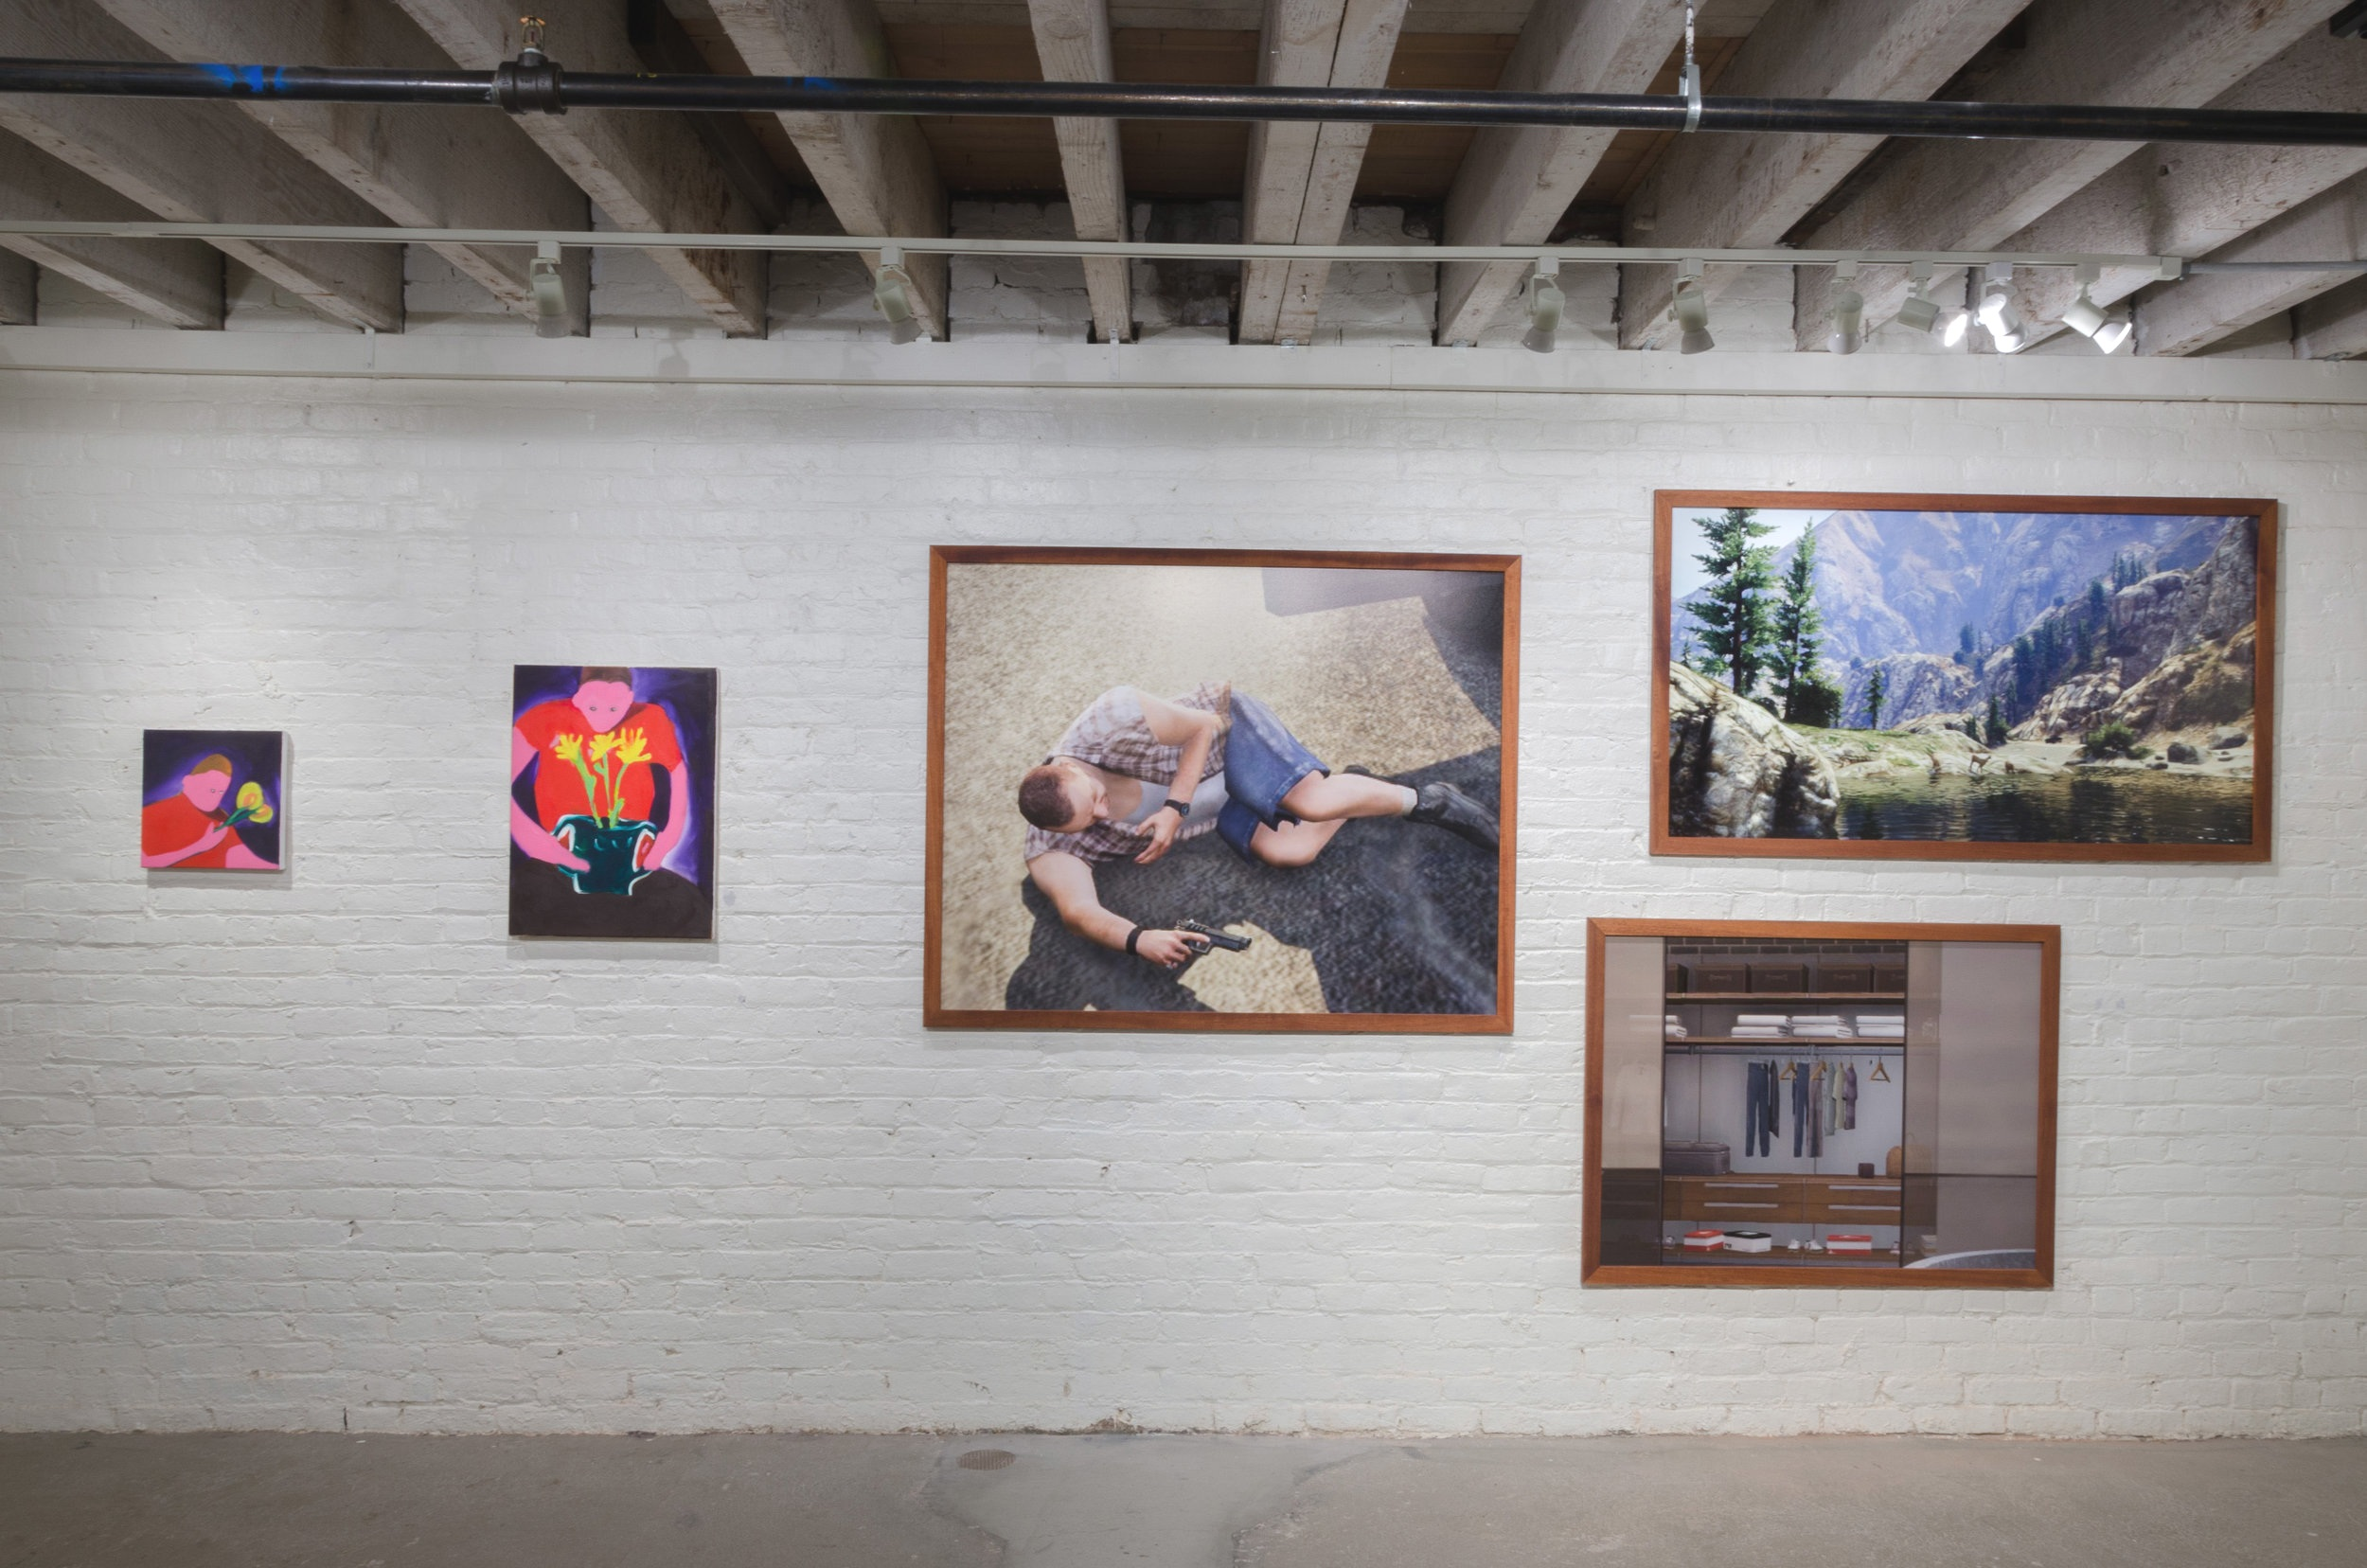 Installation View from OPEN SPACE at Founders Gallery   (from left to right)  Mindless01 , Dadesiboy69 ,  Odins_wisdom , San Rafael, 2019